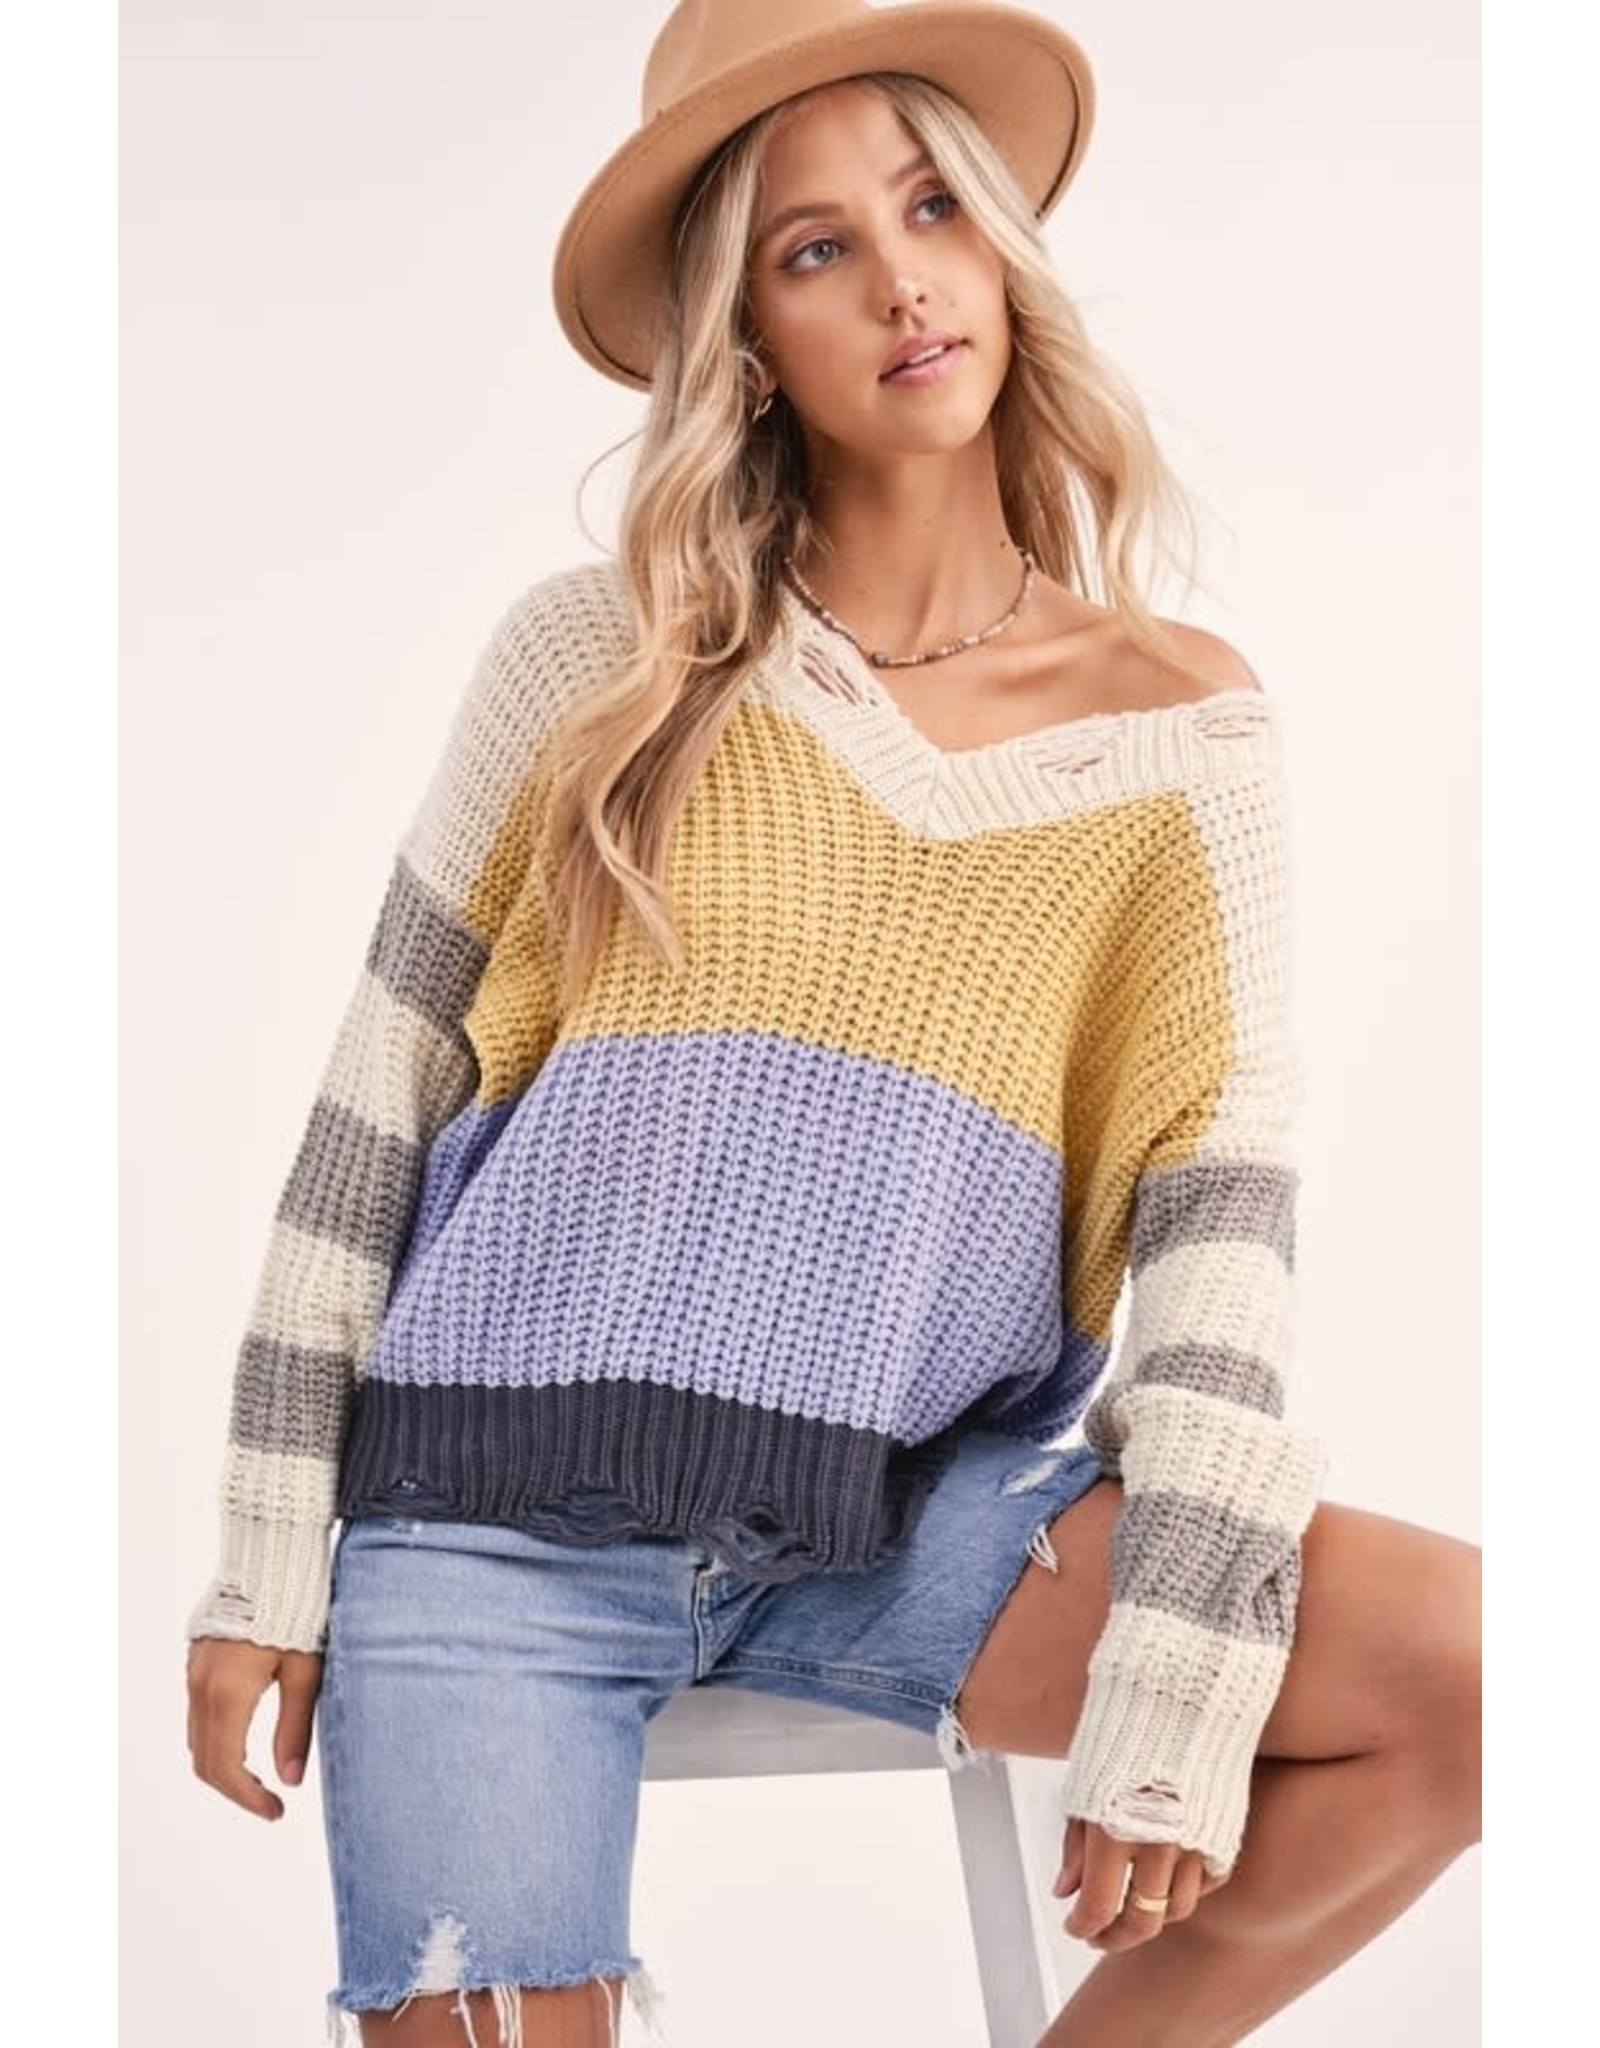 Can't Decide Striped Sweater